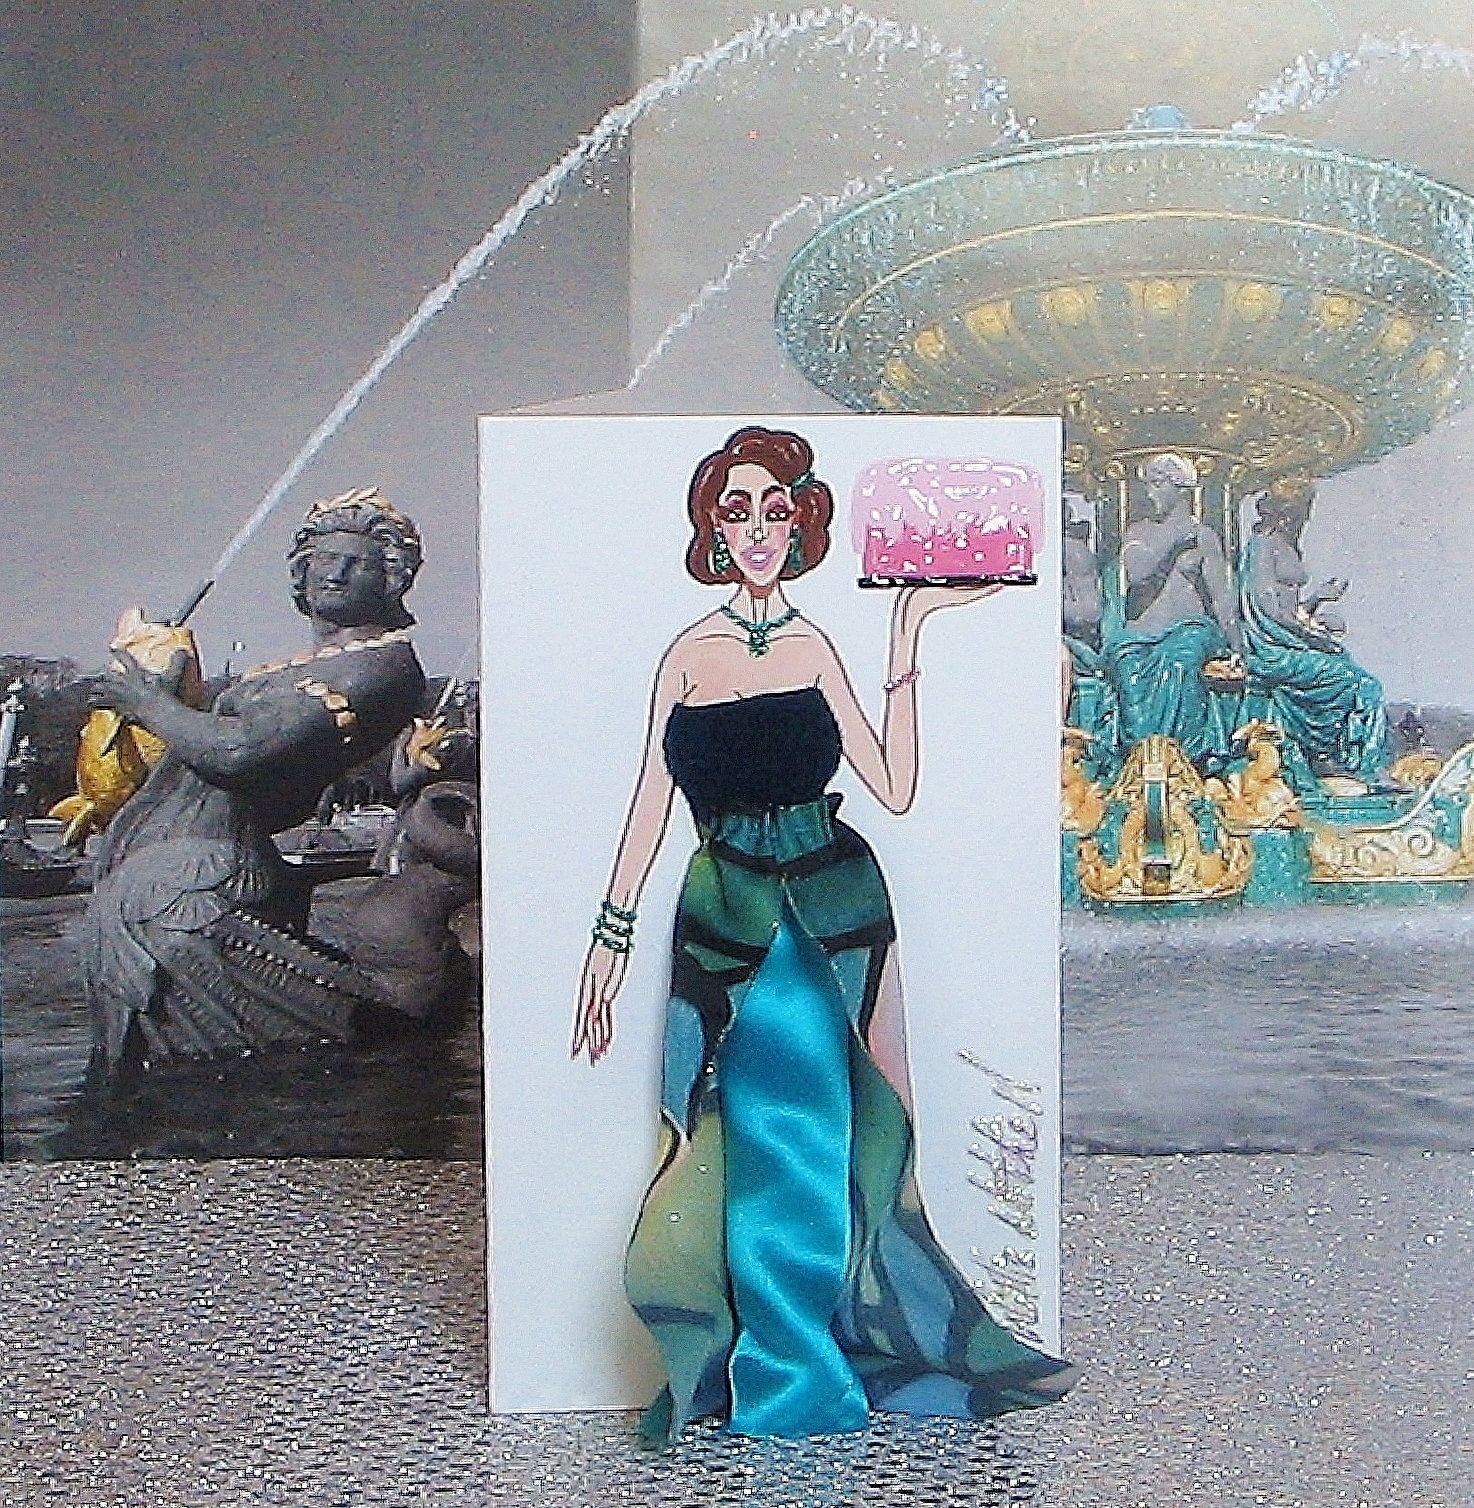 Medium 3-D Fashion Greeting Card (Sweet Deluxe Spring 2017 Edition) by WMitchellDesigns on Etsy